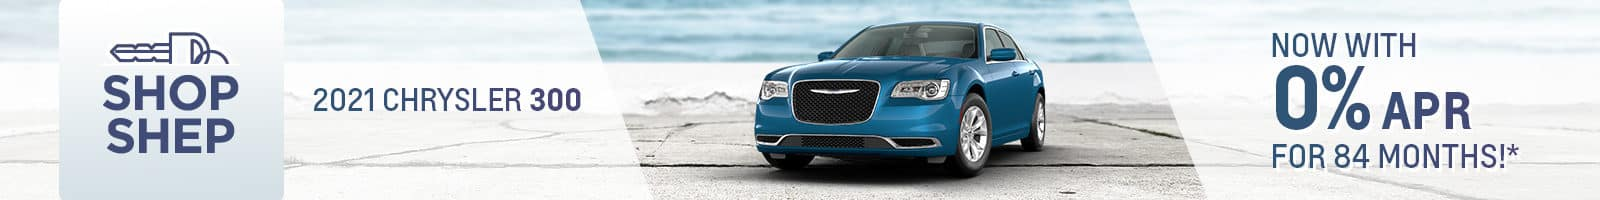 Special Financing on a New Chrysler 300 near Auburn, Indiana